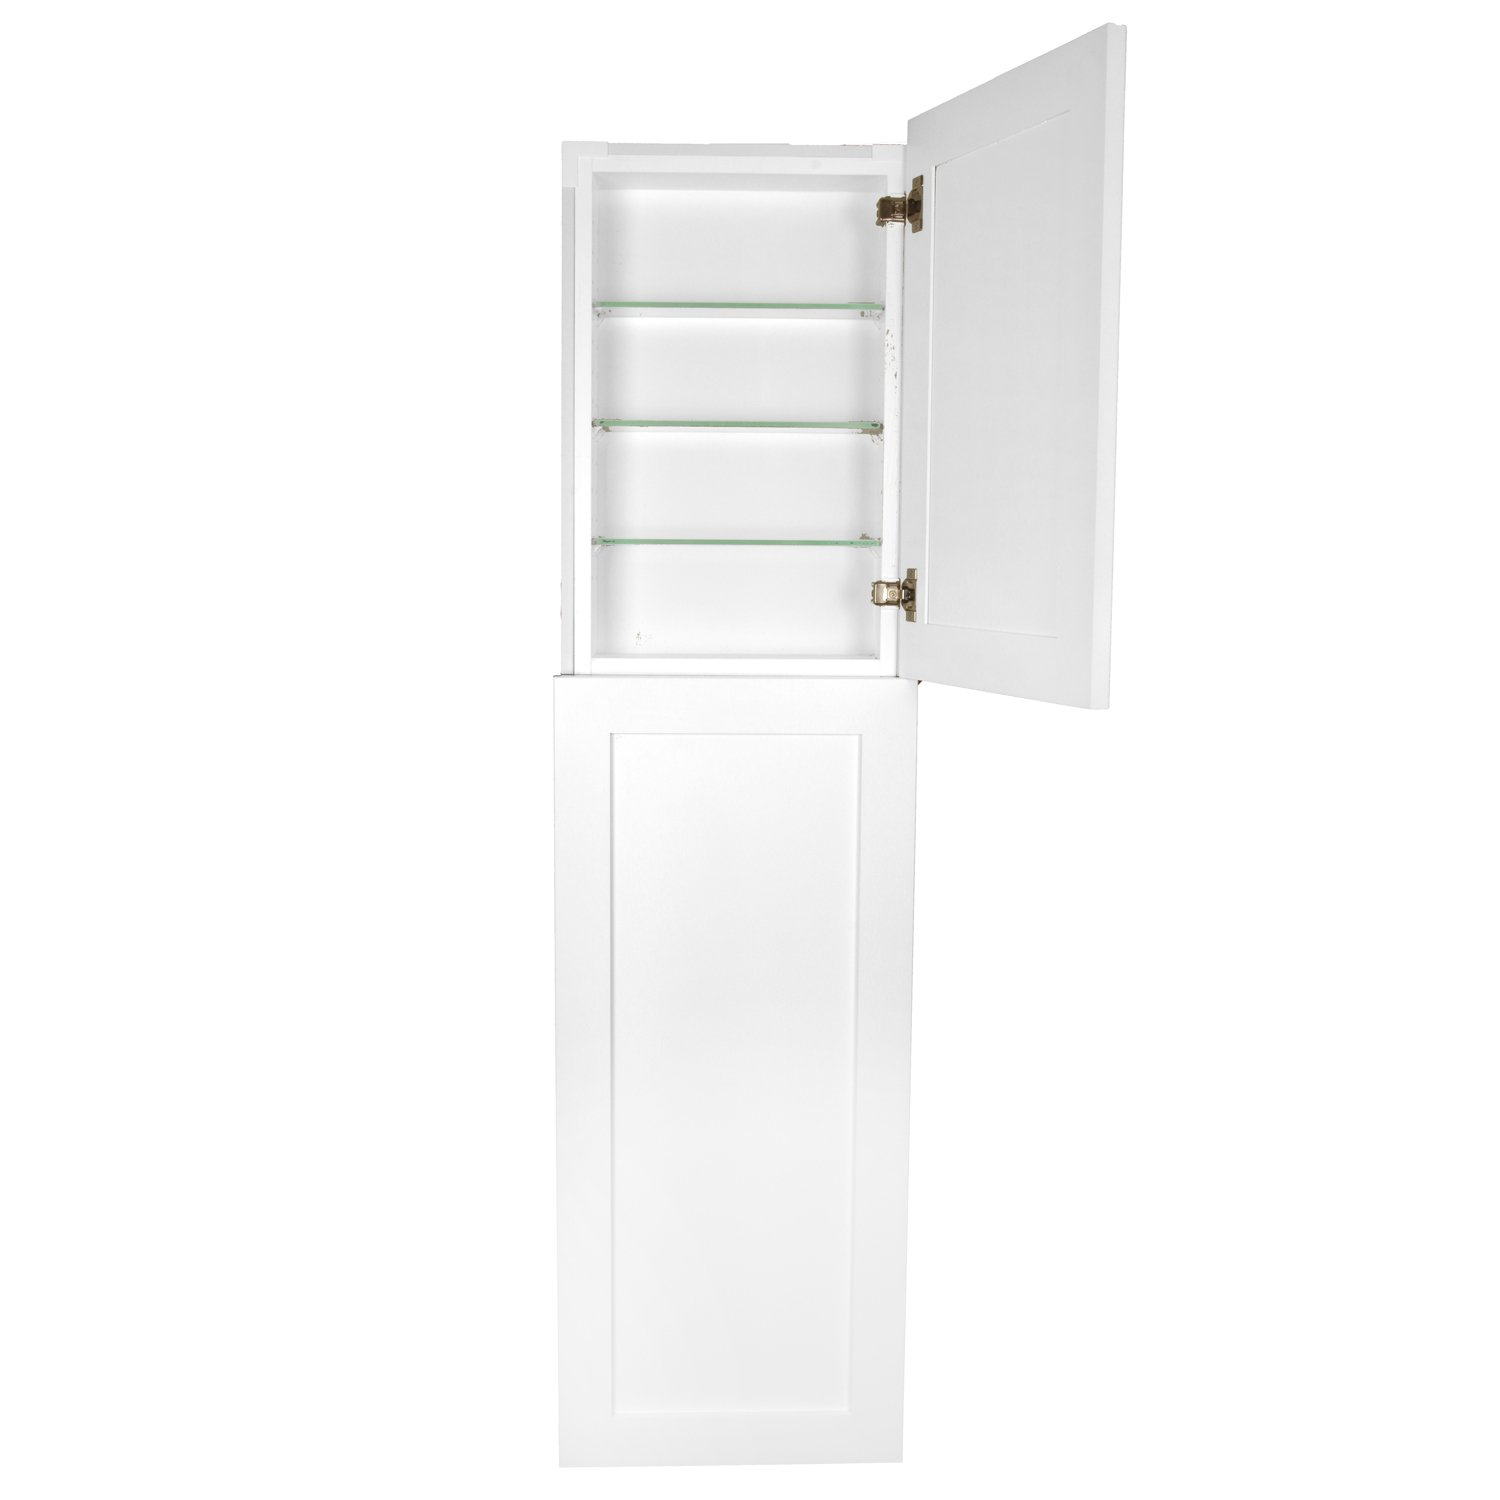 WG Wood Products Shaker Style Frameless Recessed Wall Bathroom Medicine Storage Pantry Cabinet with Multiple Finishes, 56'', White Enamel by WG Wood Products (Image #3)